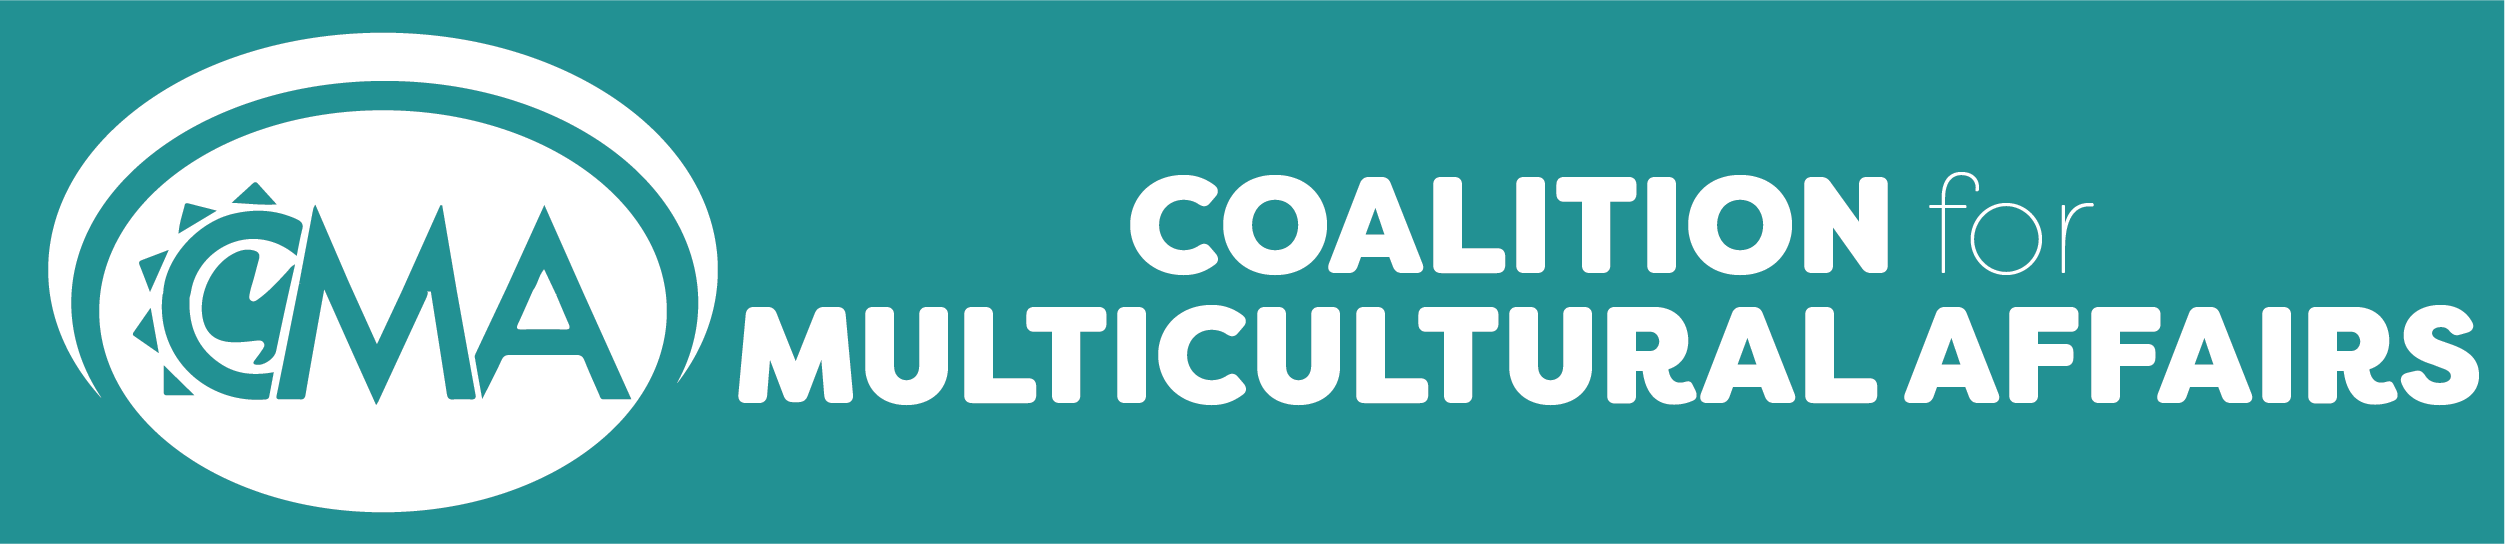 COALITION FOR MULTICULTURAL AFFAIRS HEADER